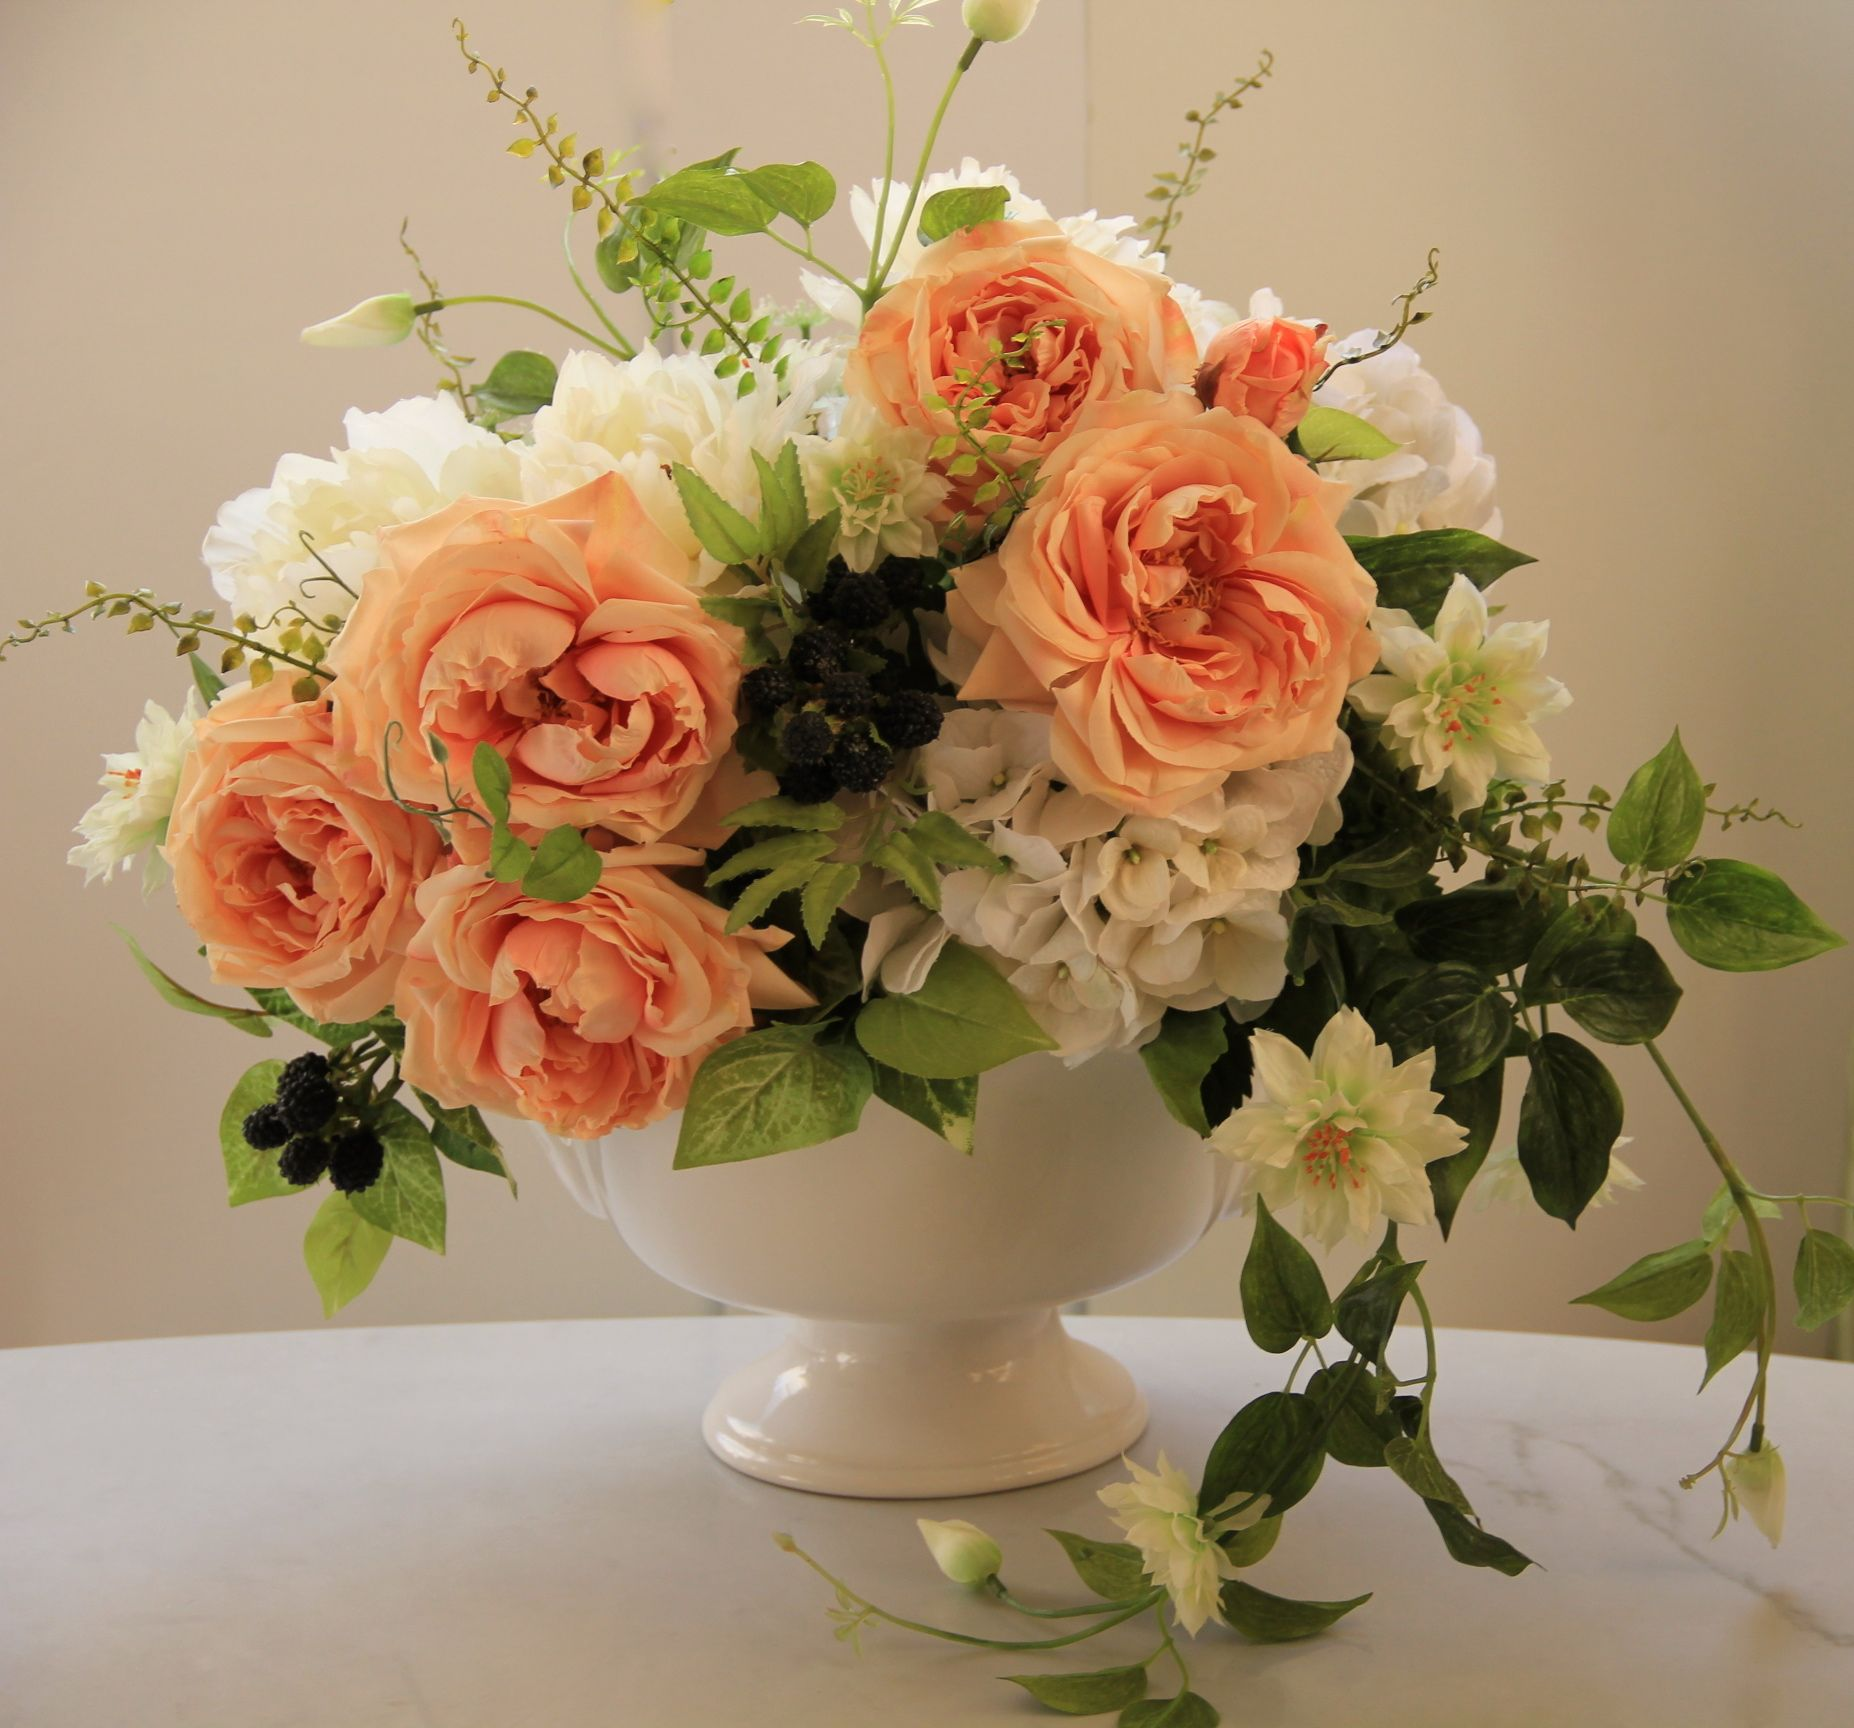 Artificial Silk Floral Arrangement White Hydrangeapeach Color